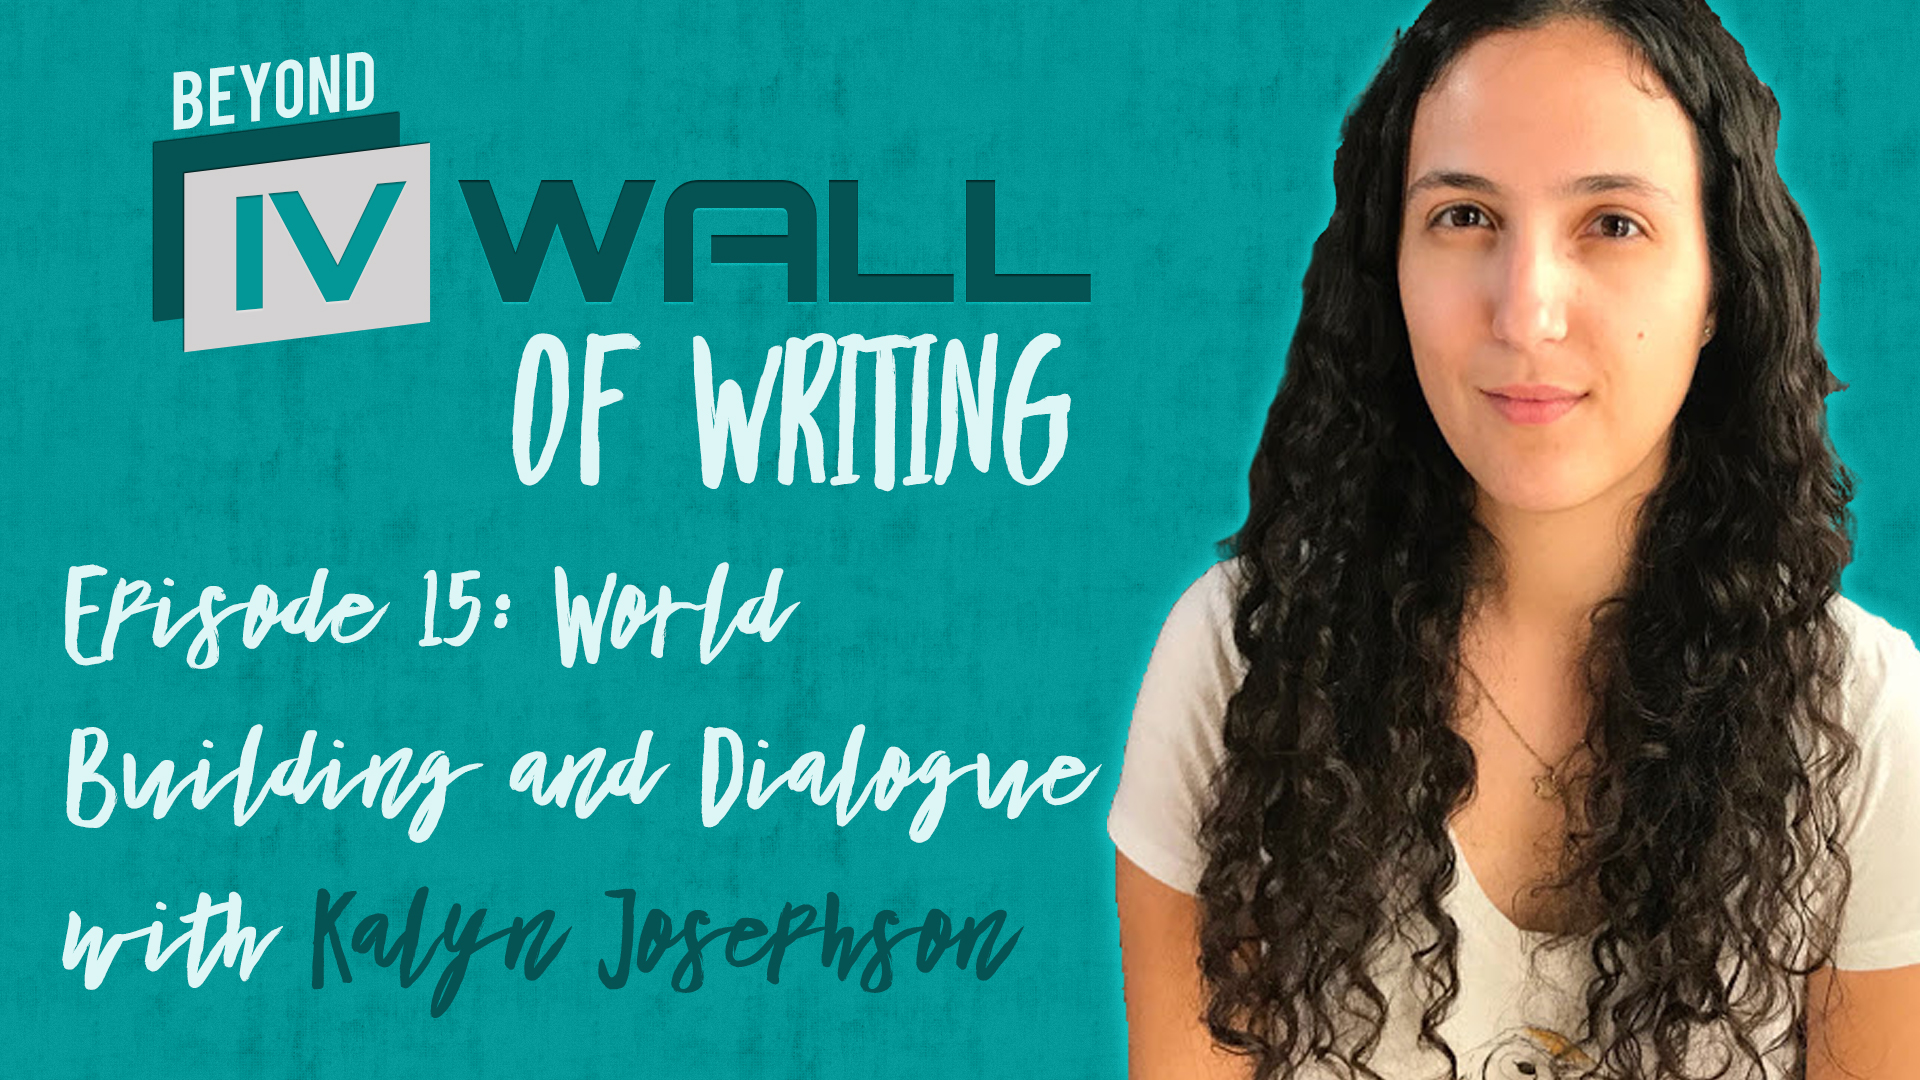 Beyond the IVWall of Writing Episode 15- World Building and Dialogue with Kalyn Josephson